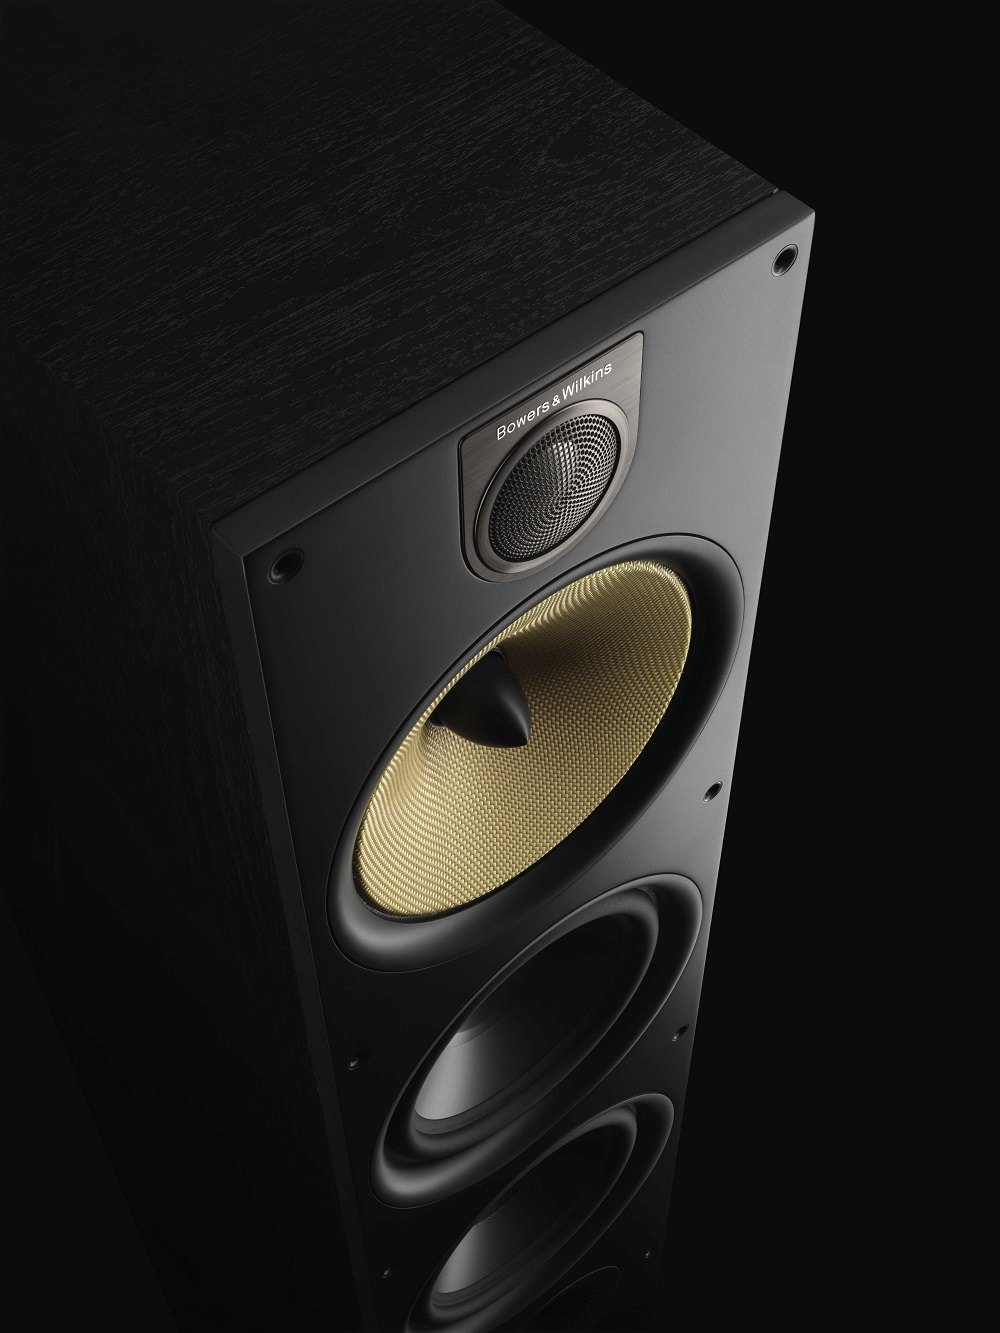 BowersWilkins-Black-683 S2